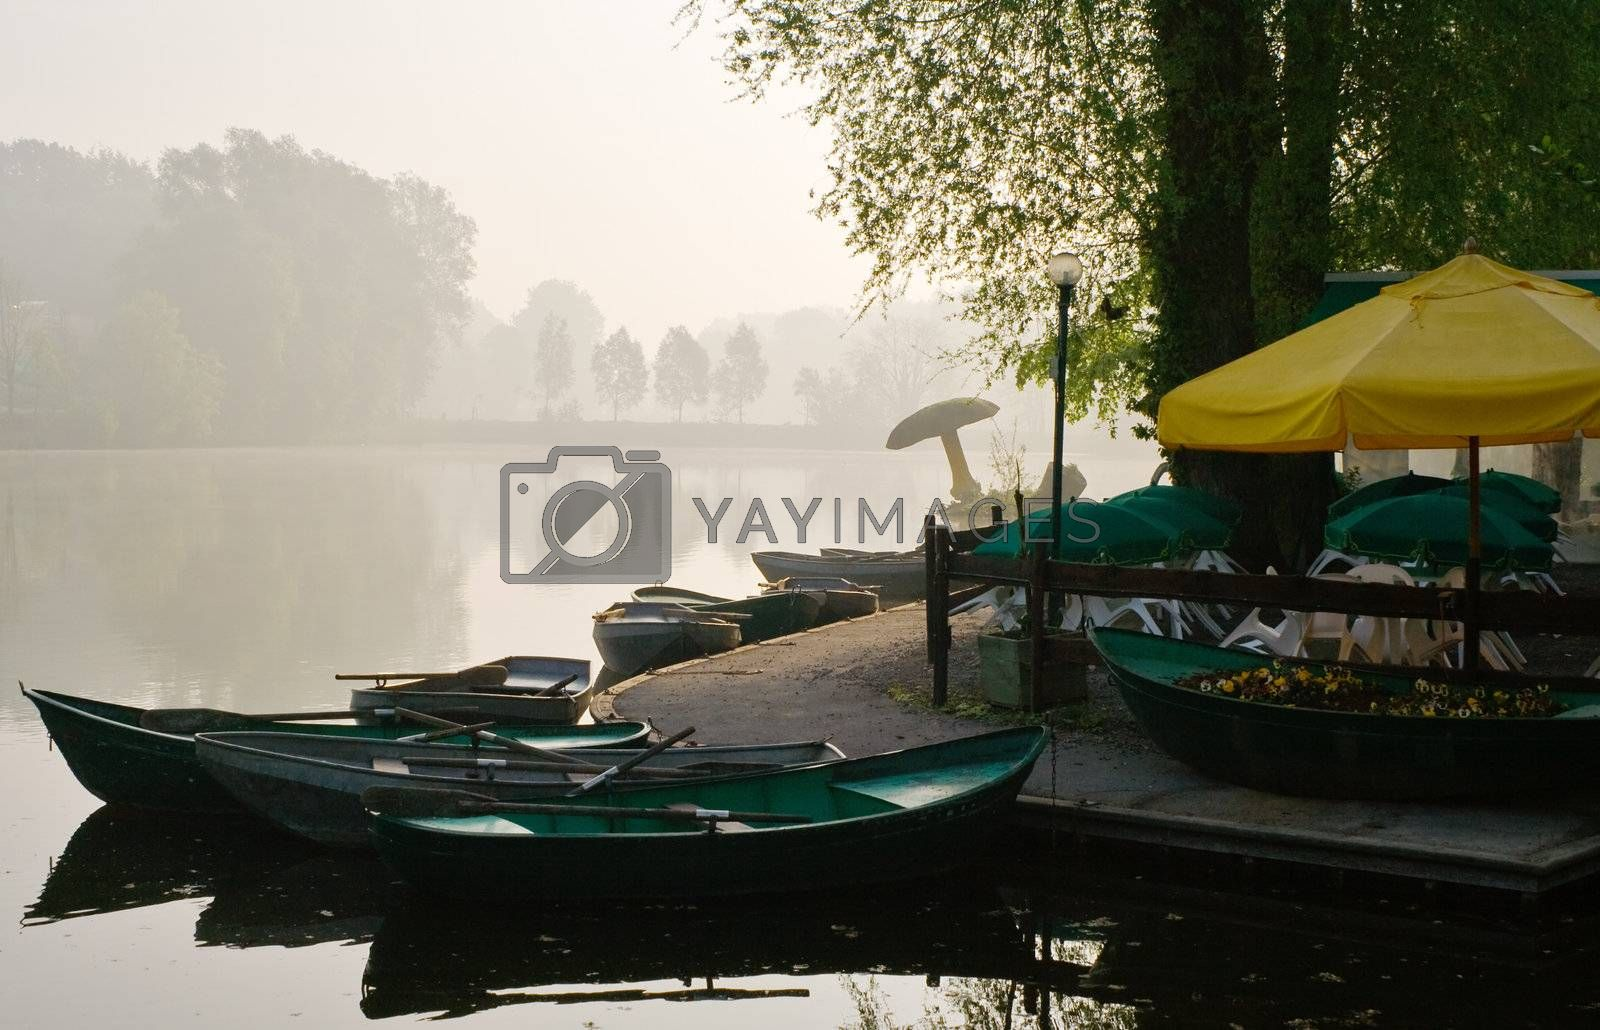 Rowing boats on the lakeside in a misty morning